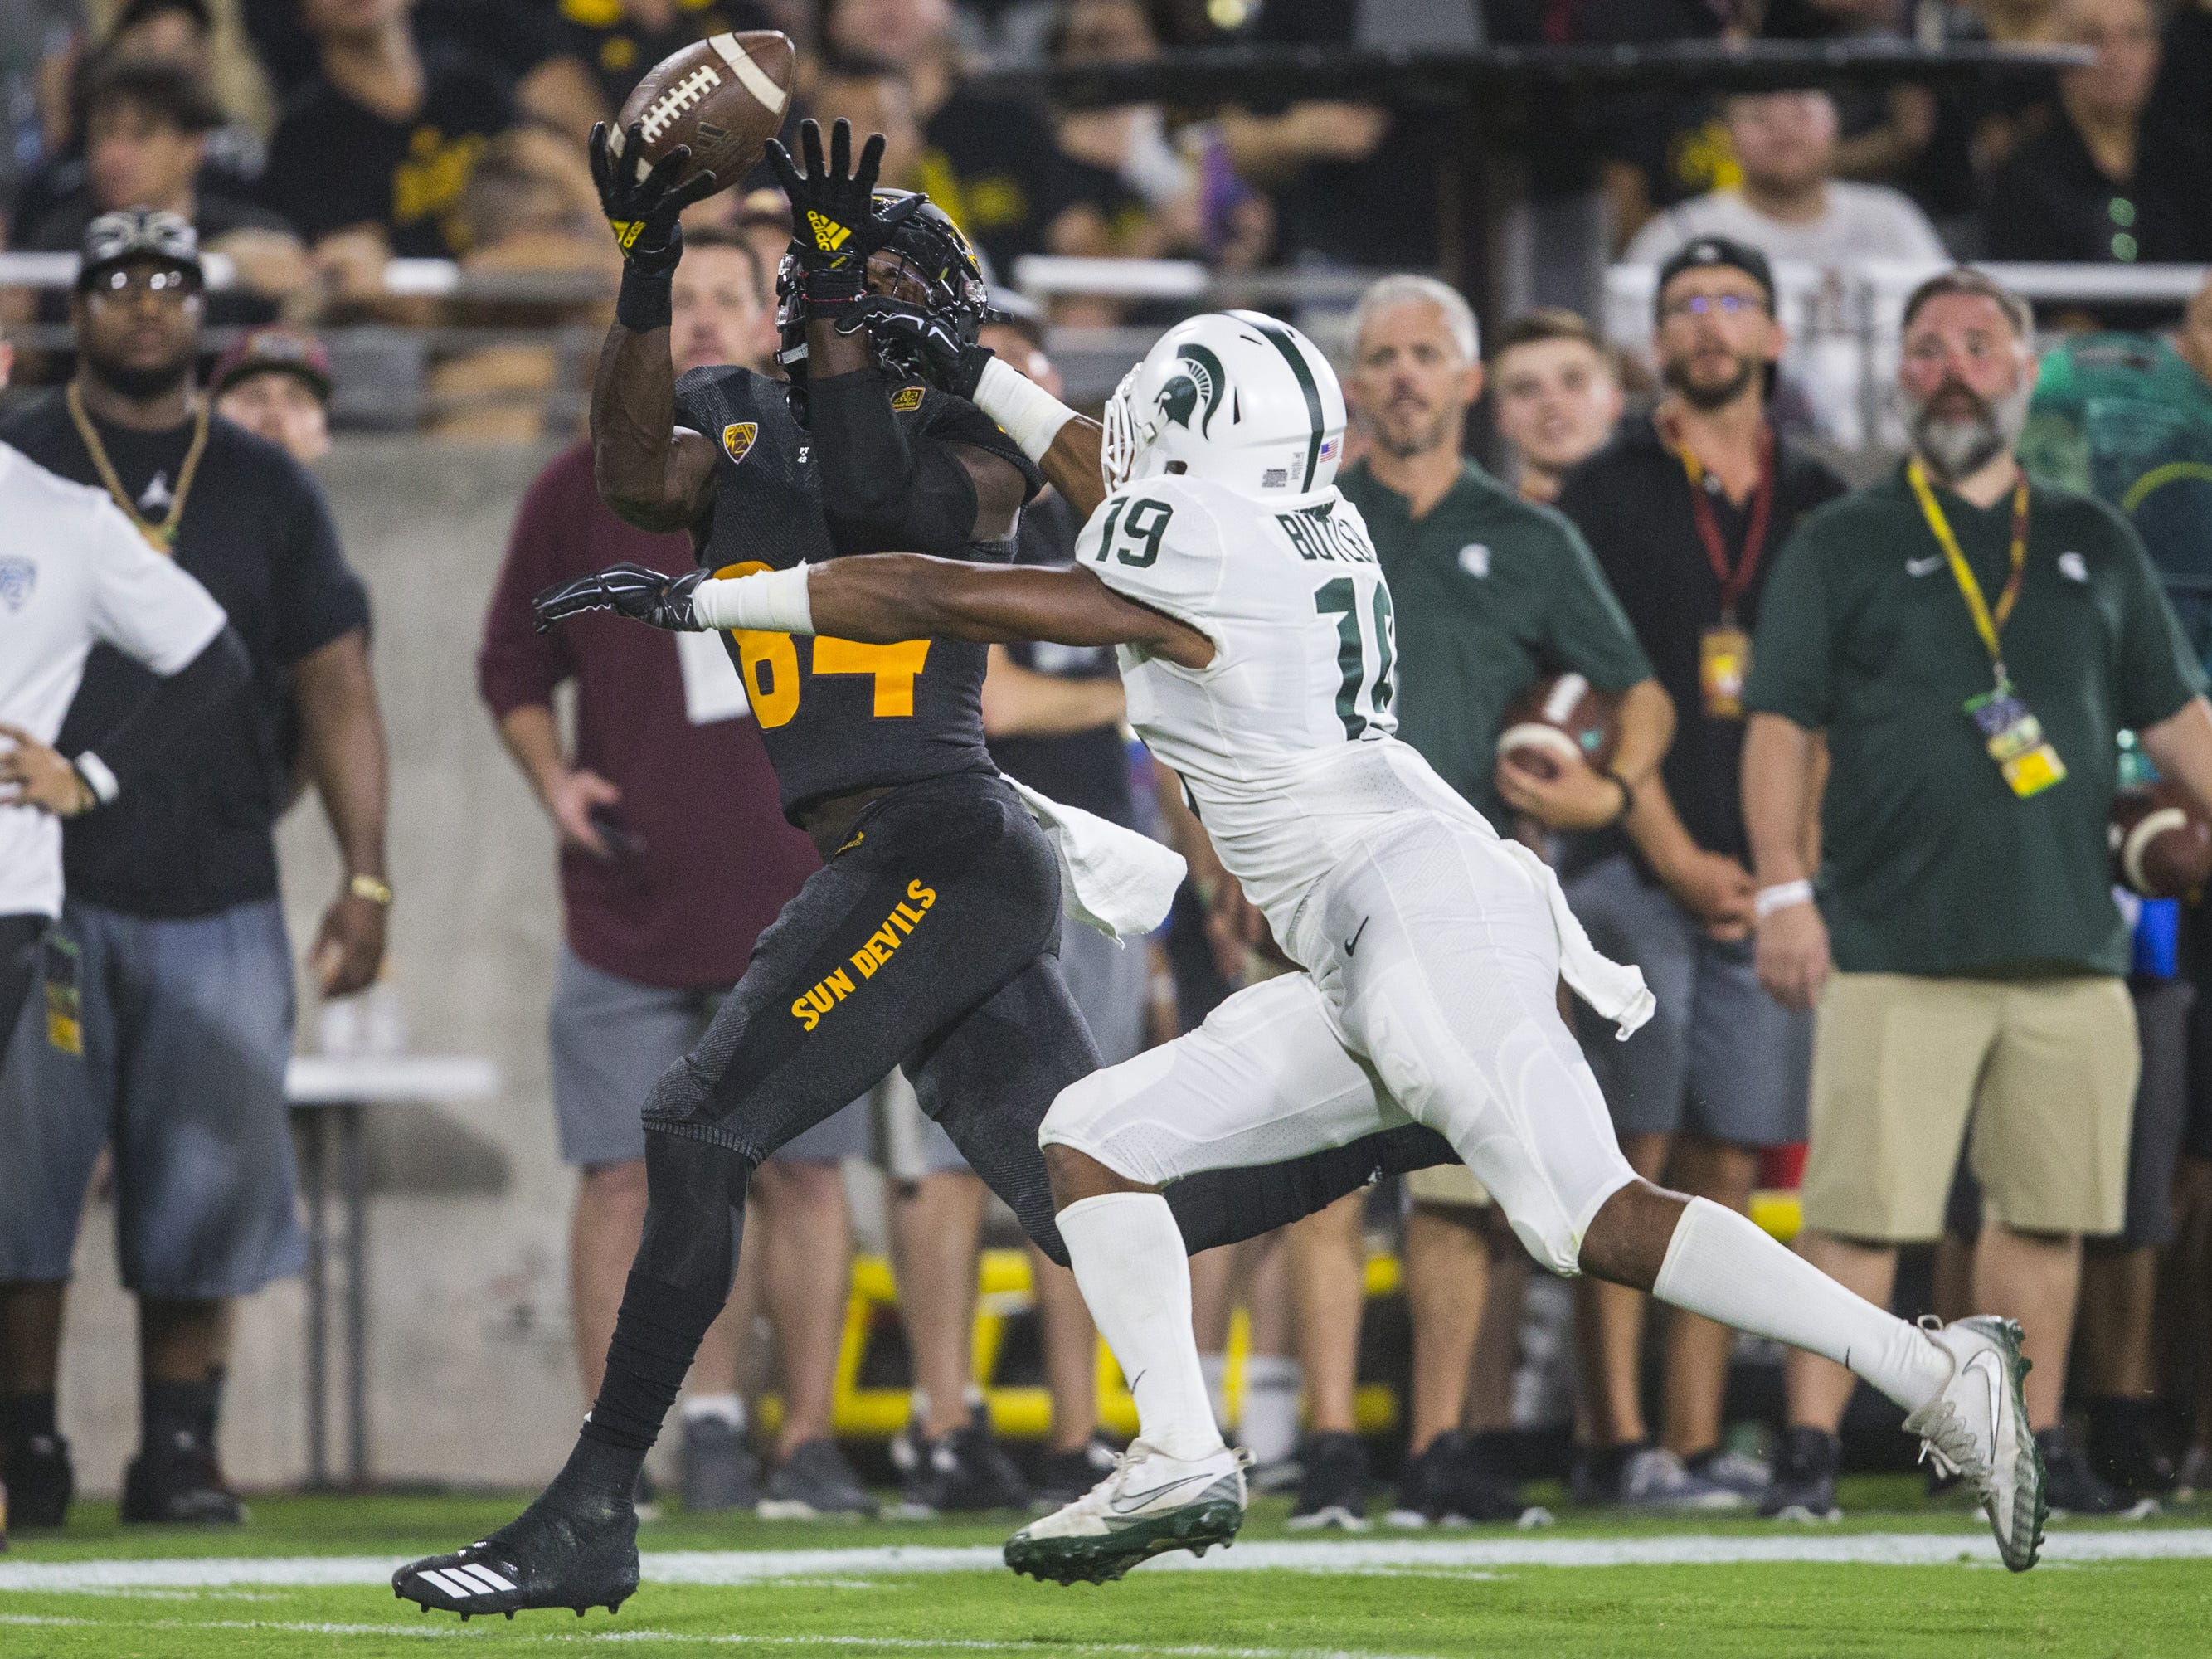 Arizona State's Frank Darby tries to make a catch but is broken up by Michigan State's Josh Butler in the 3rd quarter on Saturday, Sept. 8, 2018, at Sun Devil Stadium in Tempe, Ariz.